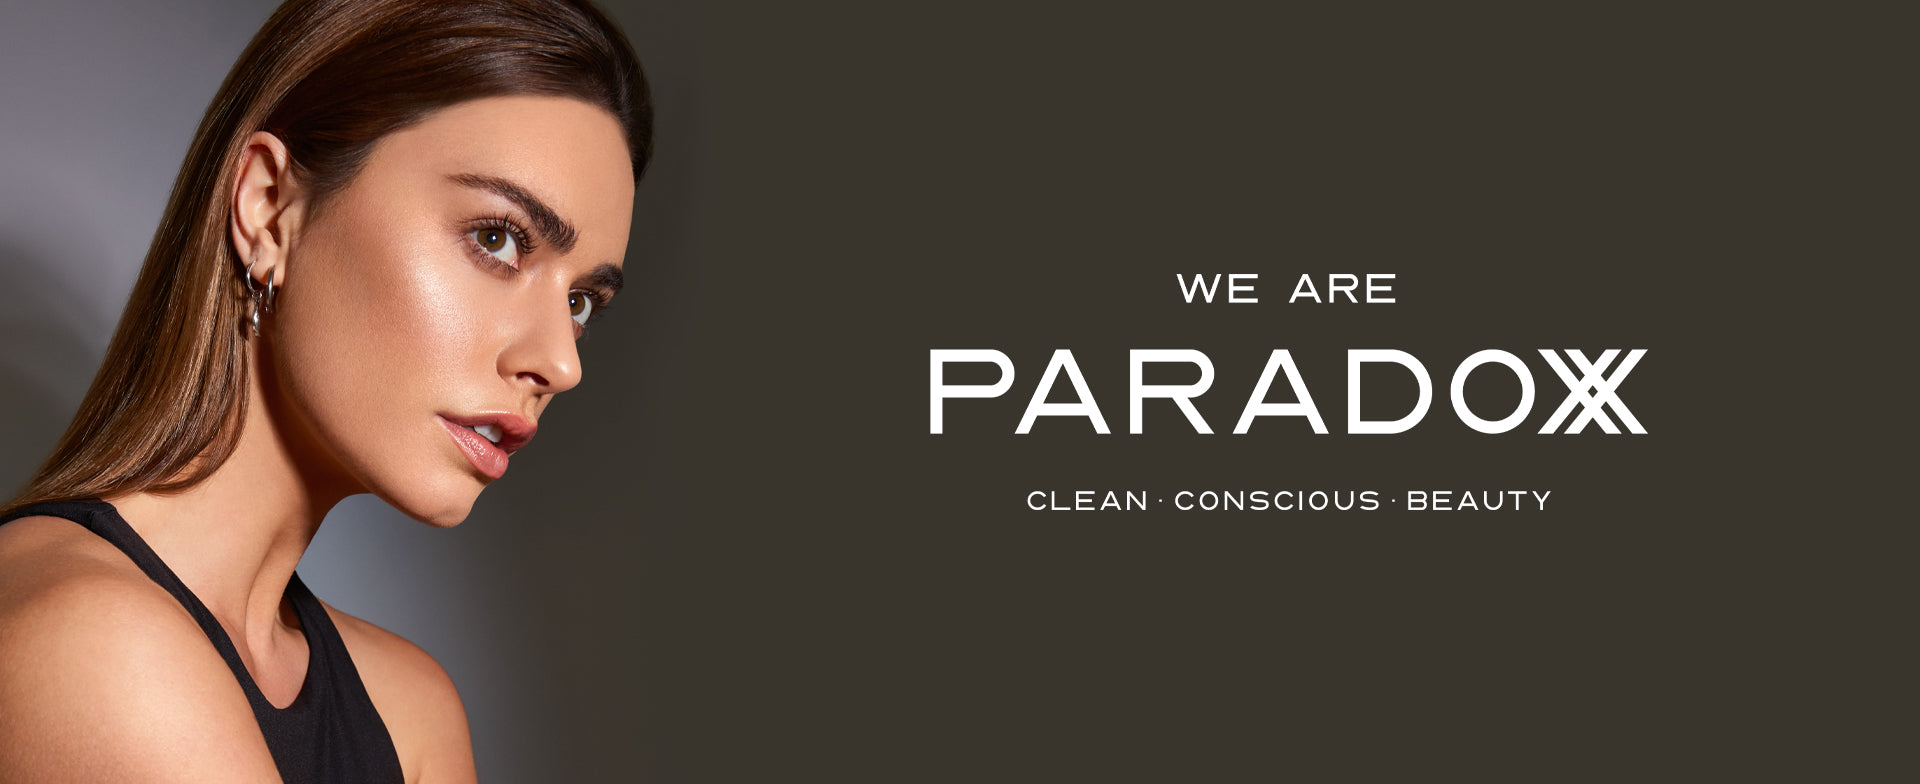 WE ARE PARADOXX | HAIR PLASTIC FREE SUSTAINABLE HAIRCARE